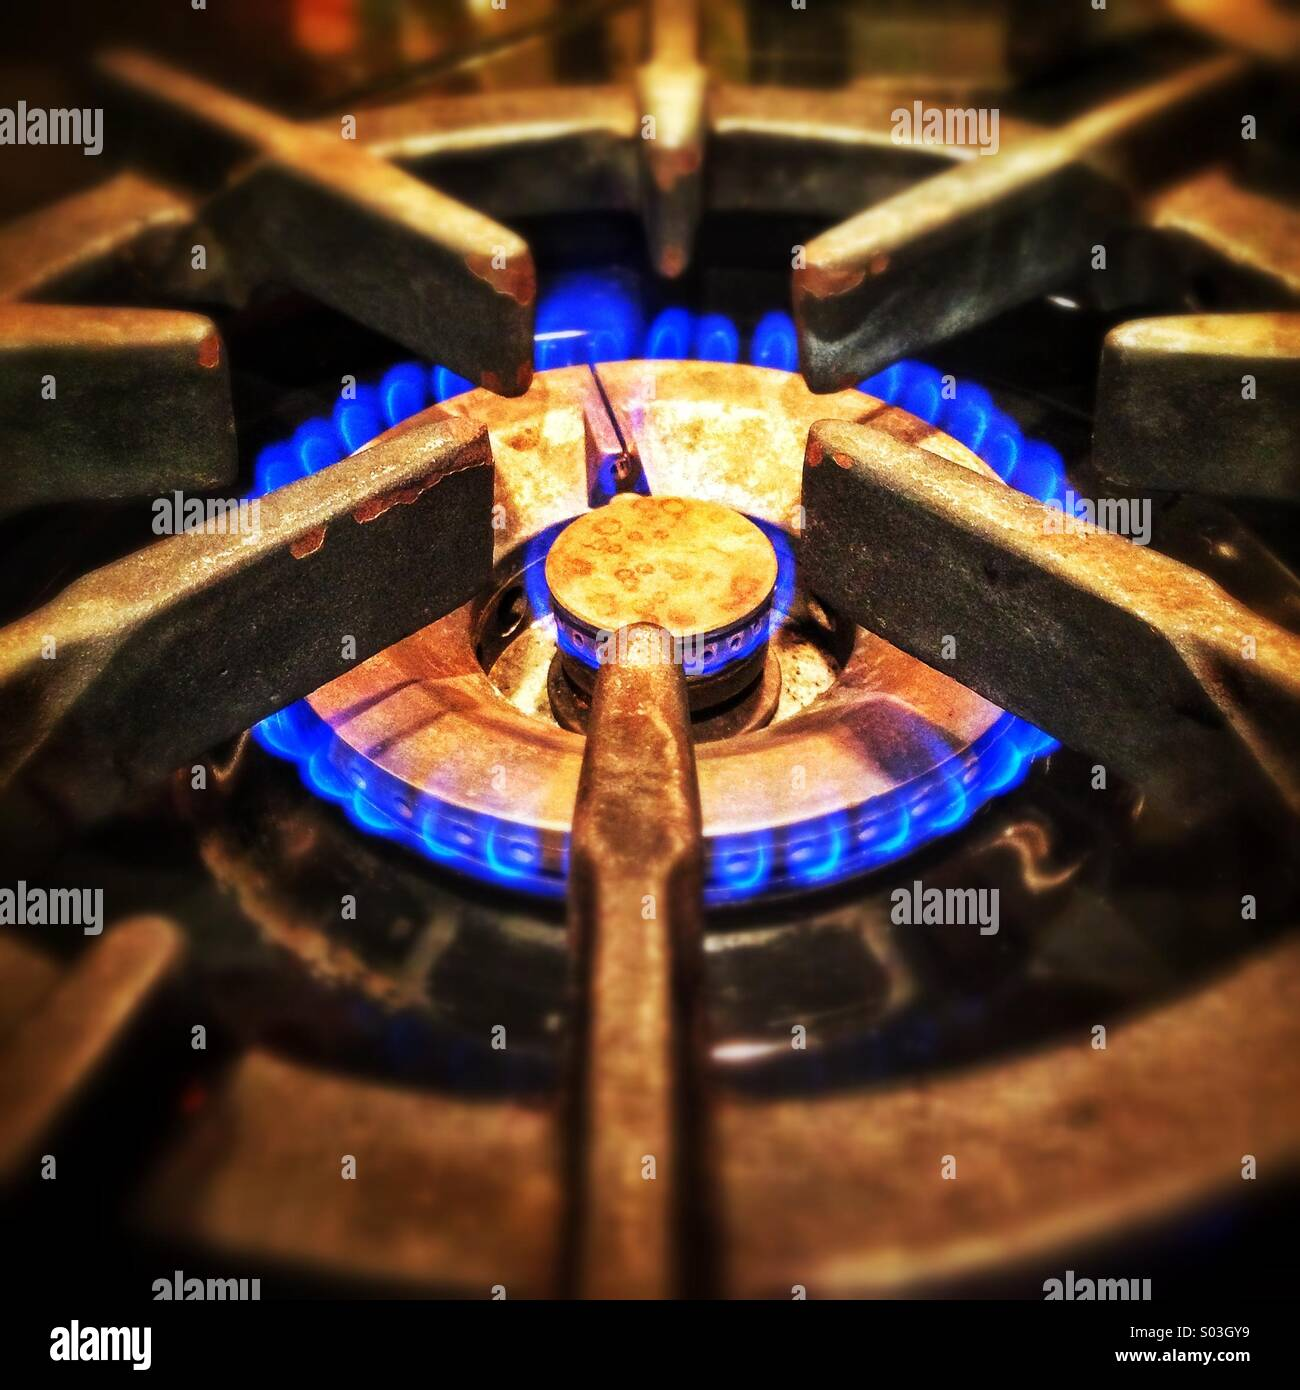 Gas range with blue flame. - Stock Image